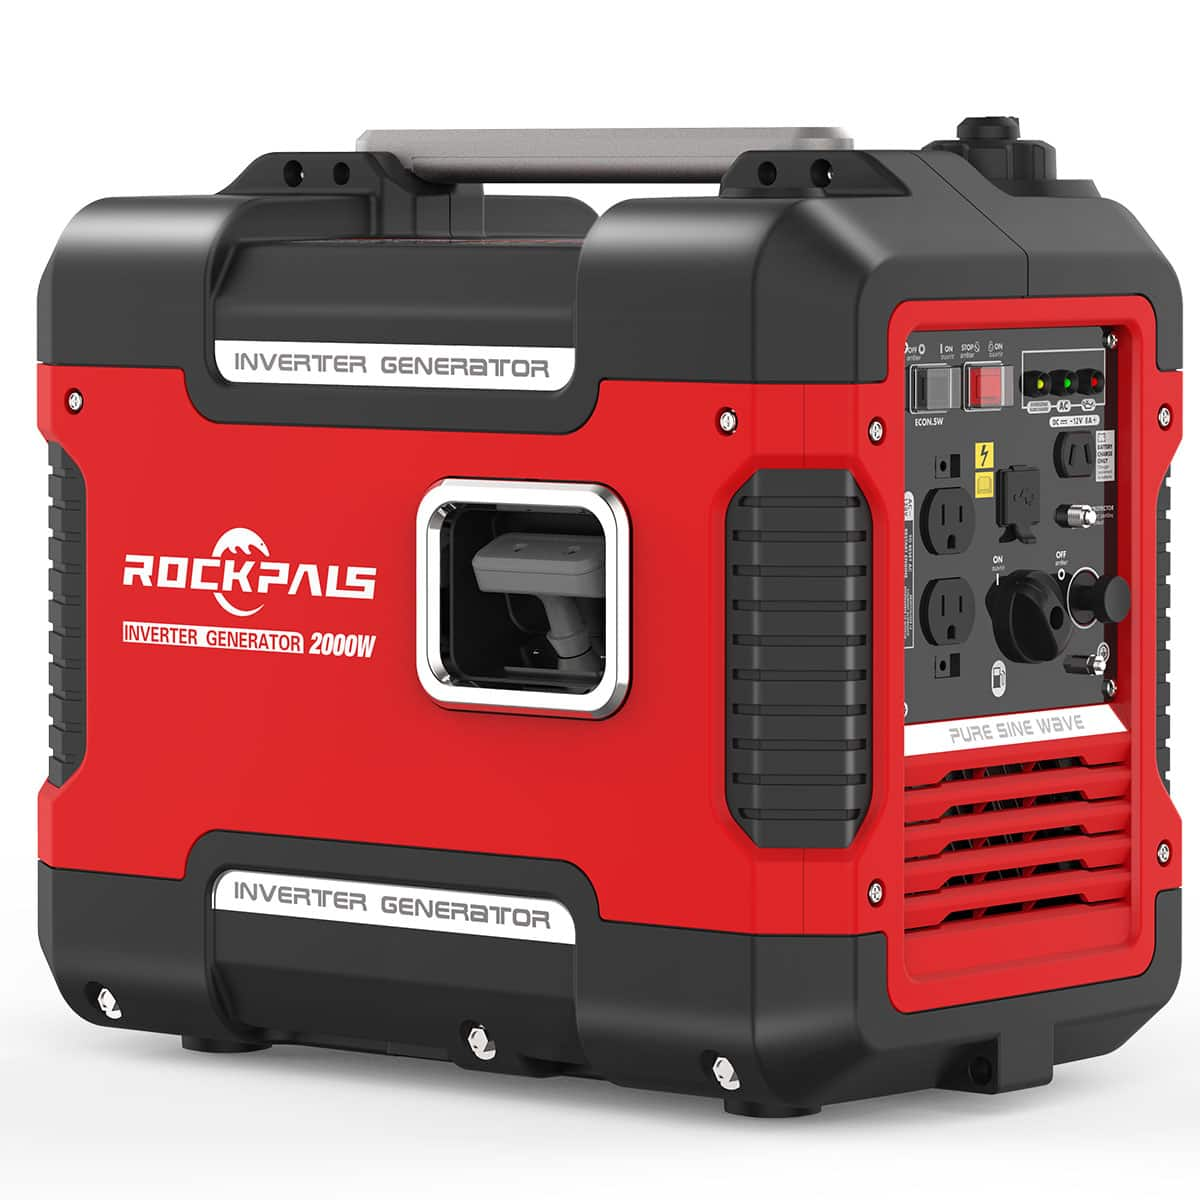 Rockpals 2000Watt Portable Generator Super Quiet Inverter Generator With 9 Hours Run time, with Eco-Mode Generator For Emergency /Home / Travel $299.99+FS